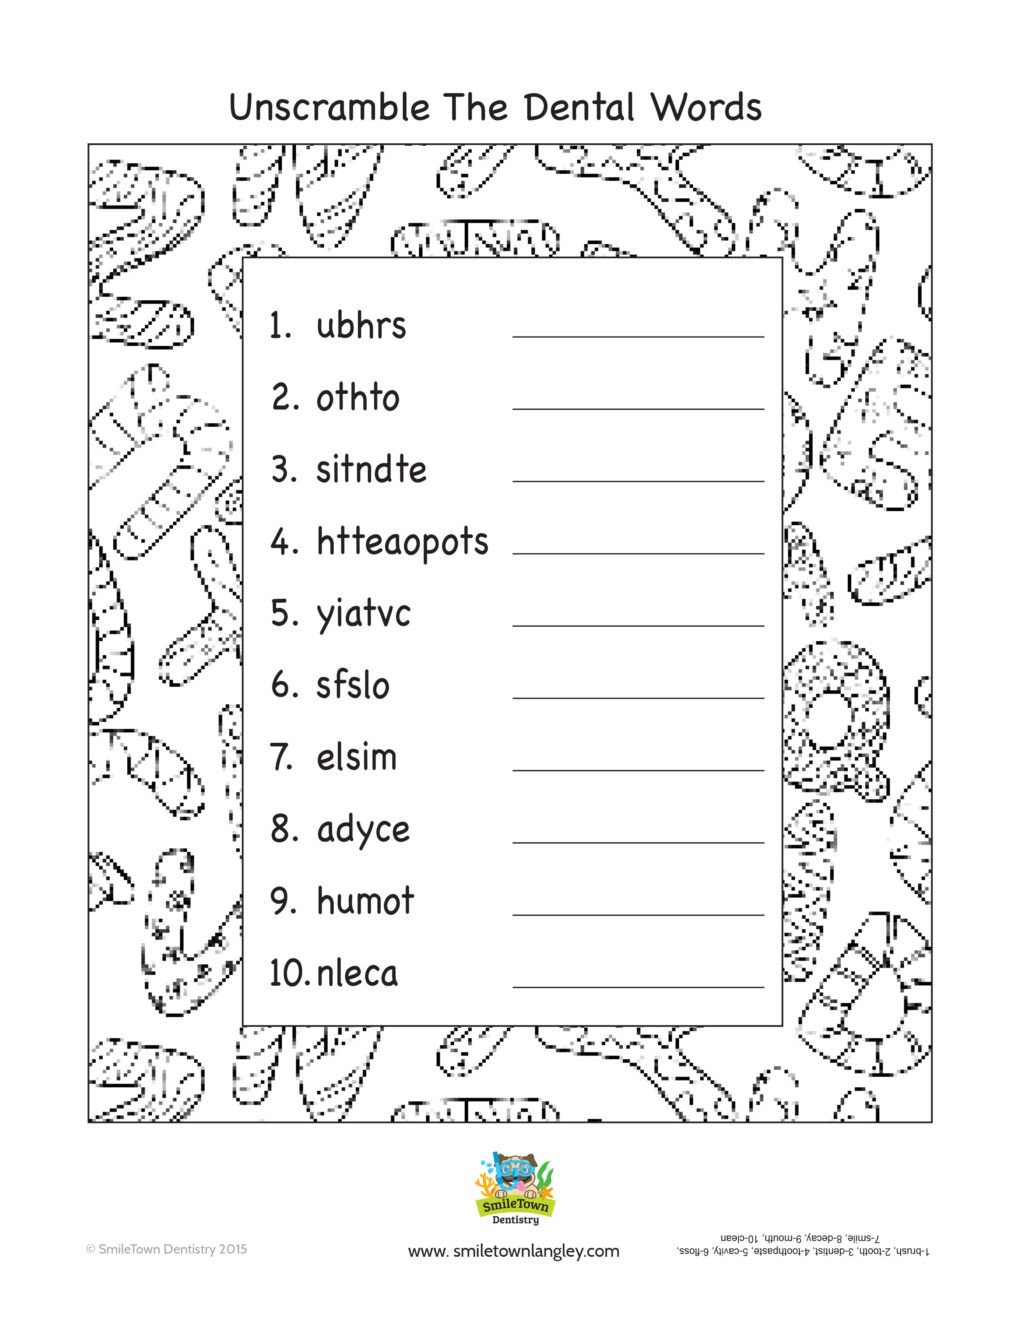 smile town langley kids activity book free sheets printable for asaph in the bible fire safety worksheets 1024x1325